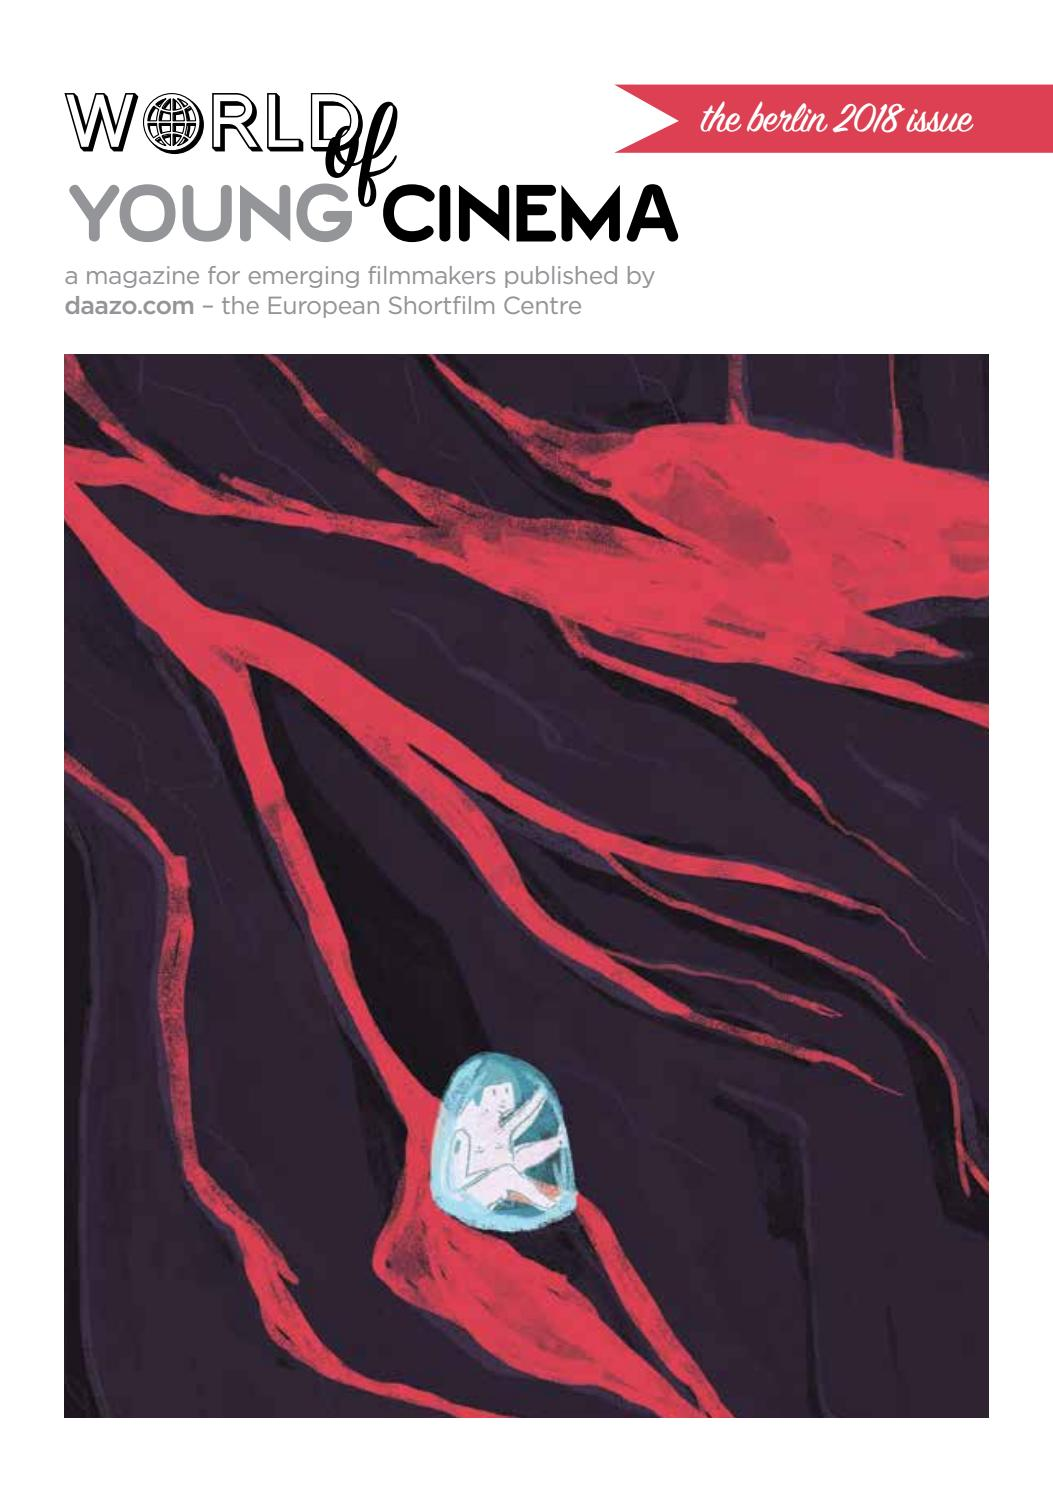 69d549c1836 World of Young Cinema – The Berlinale 2018 Issue by Daazo.com - The ...